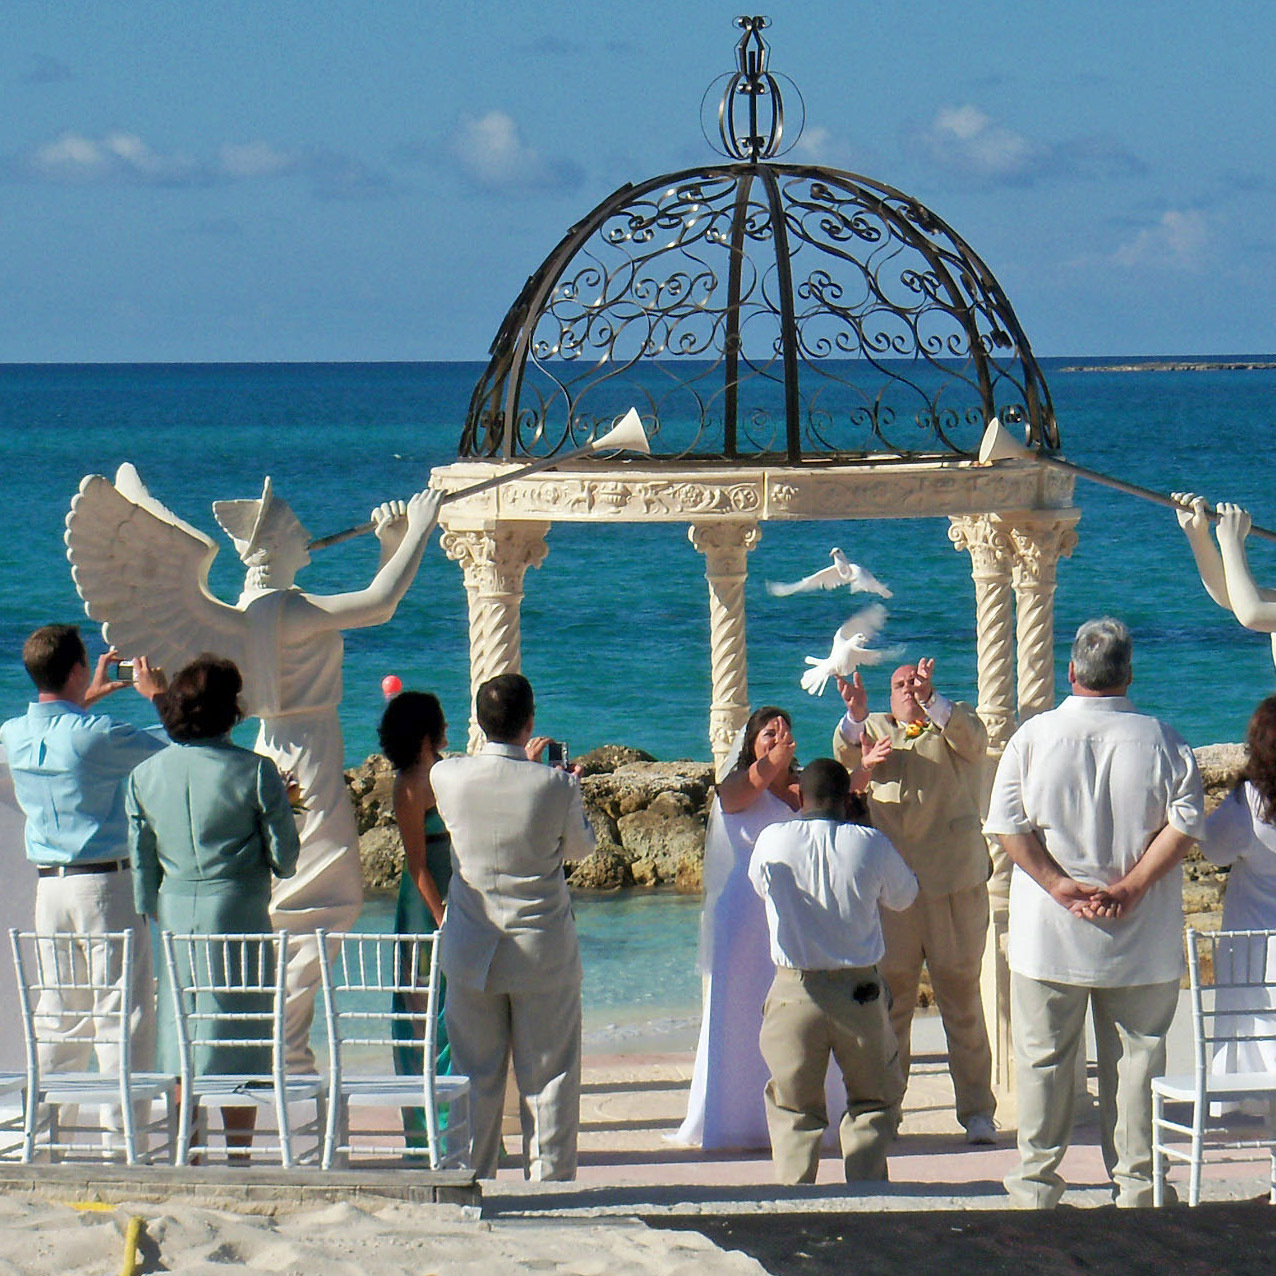 Honeymoon, Destinations, Honeymoons, Wedding, Destination, Sandals, All about honeymoons destination weddings